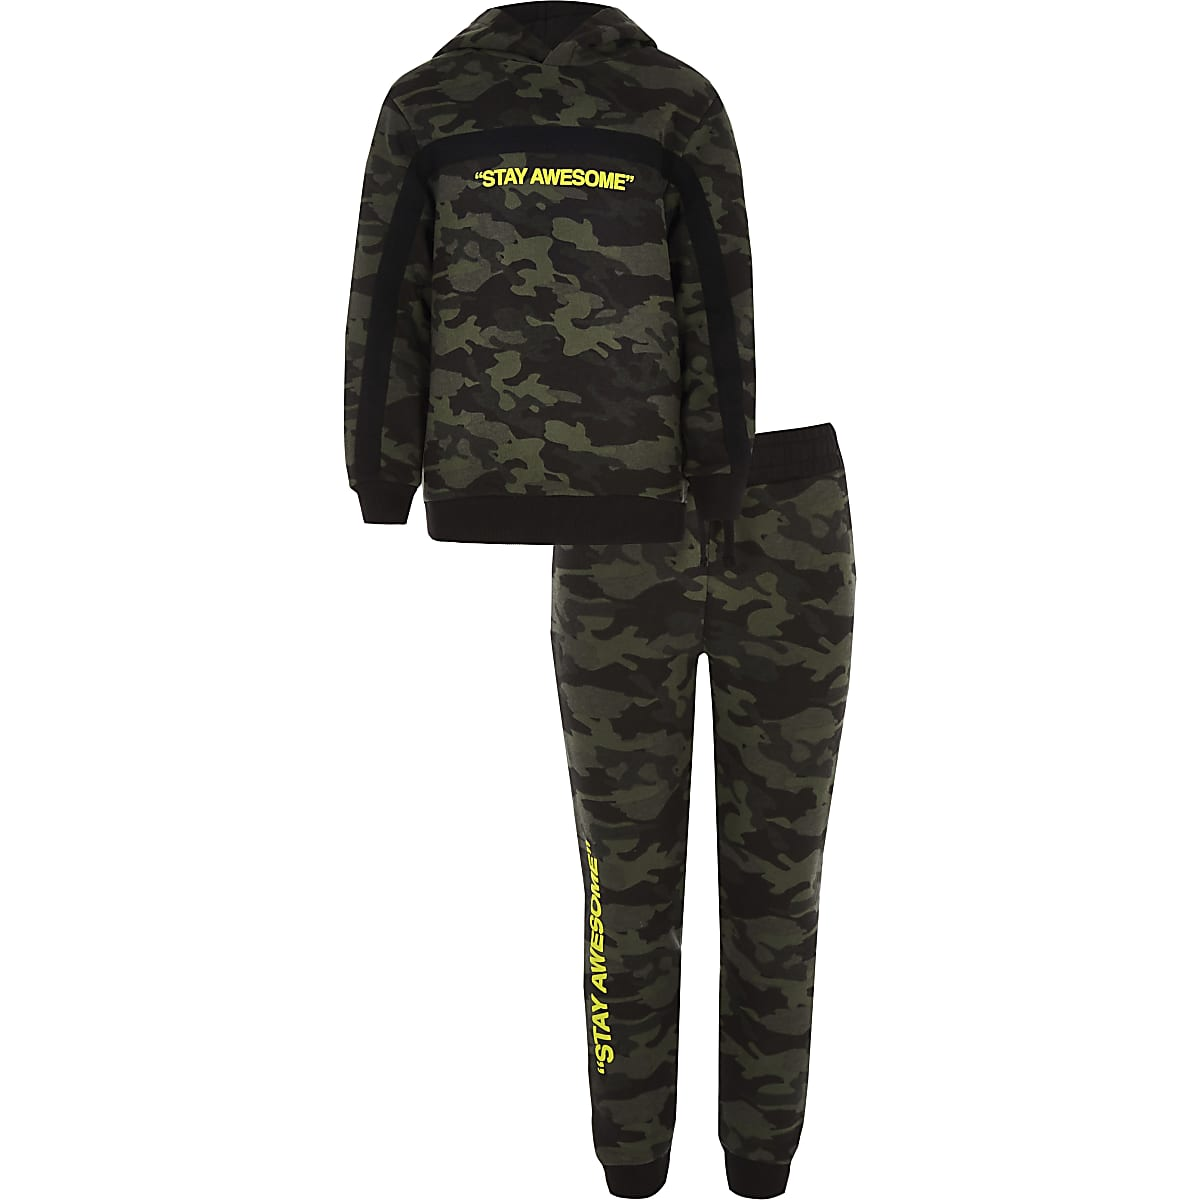 Boys khaki camo 'Stay awesome' hoodie outfit